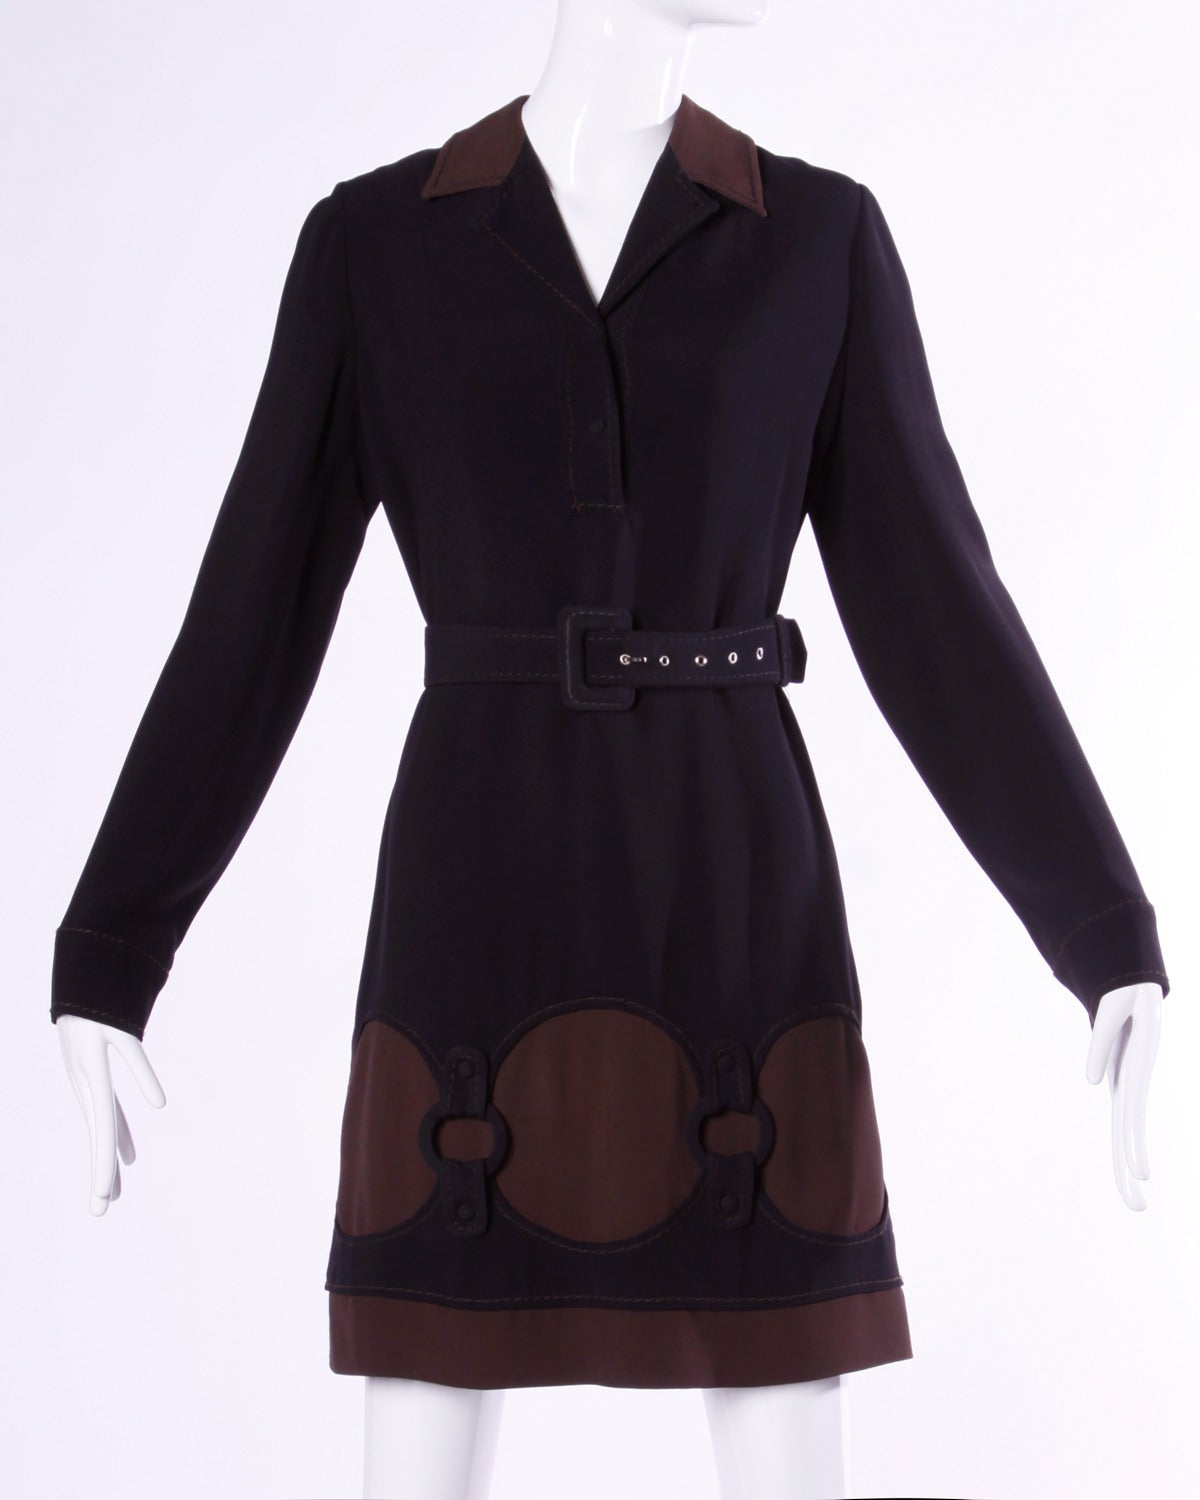 Moschino Vintage 1990s 90s Black + Brown Cut Out Shift Dress + Belt In Excellent Condition For Sale In Sparks, NV